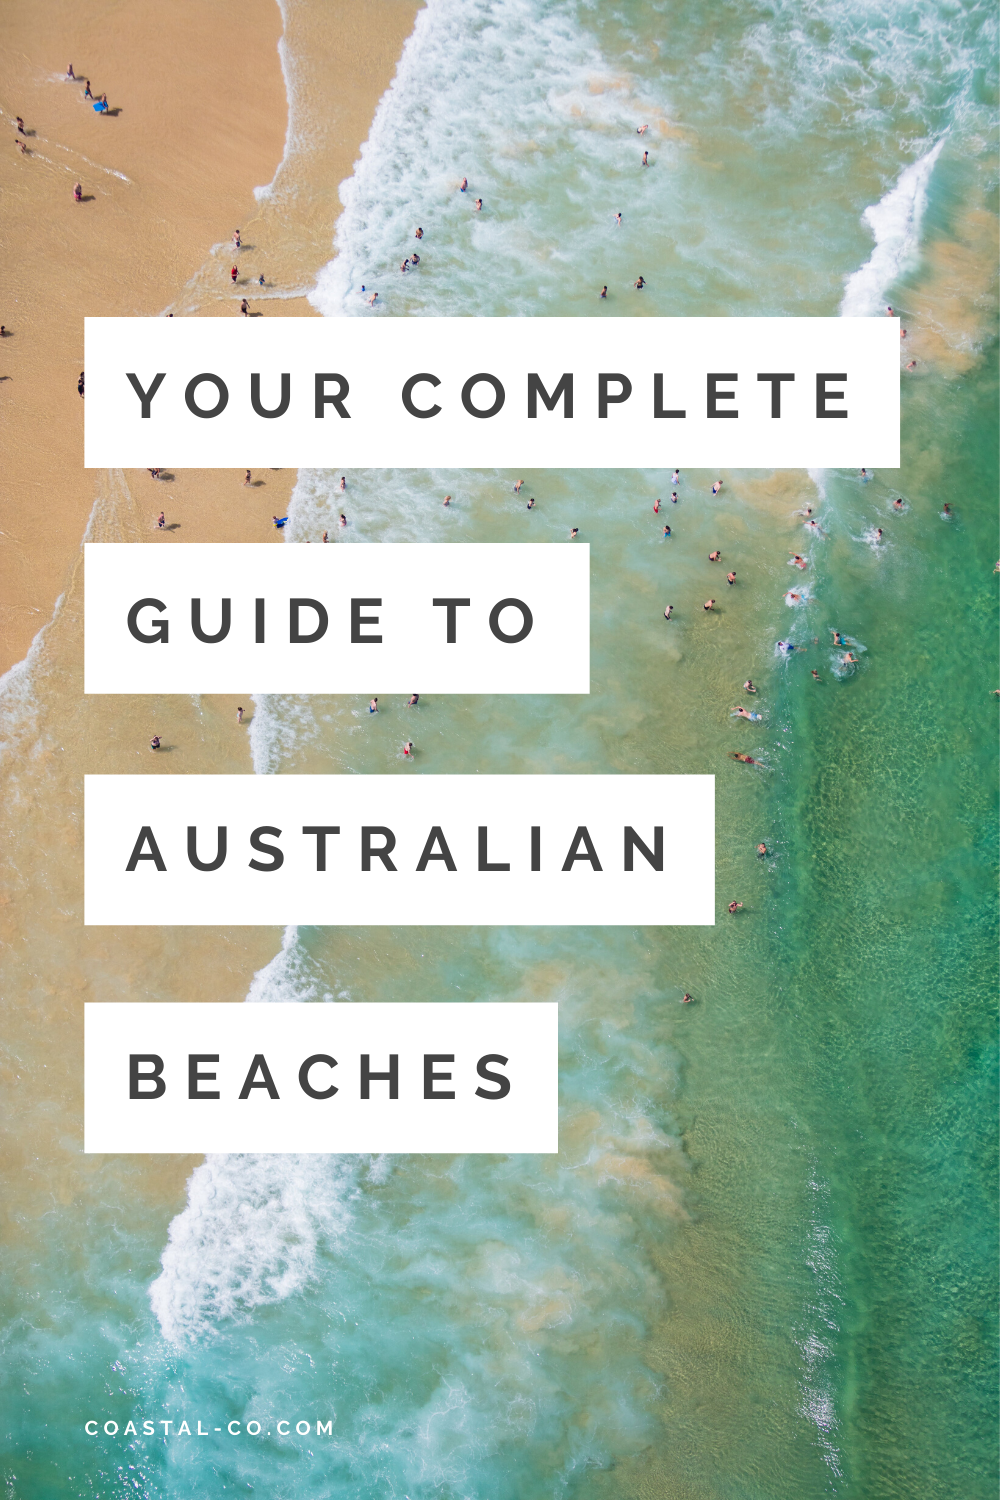 Your Complete Guide to Australian Beaches